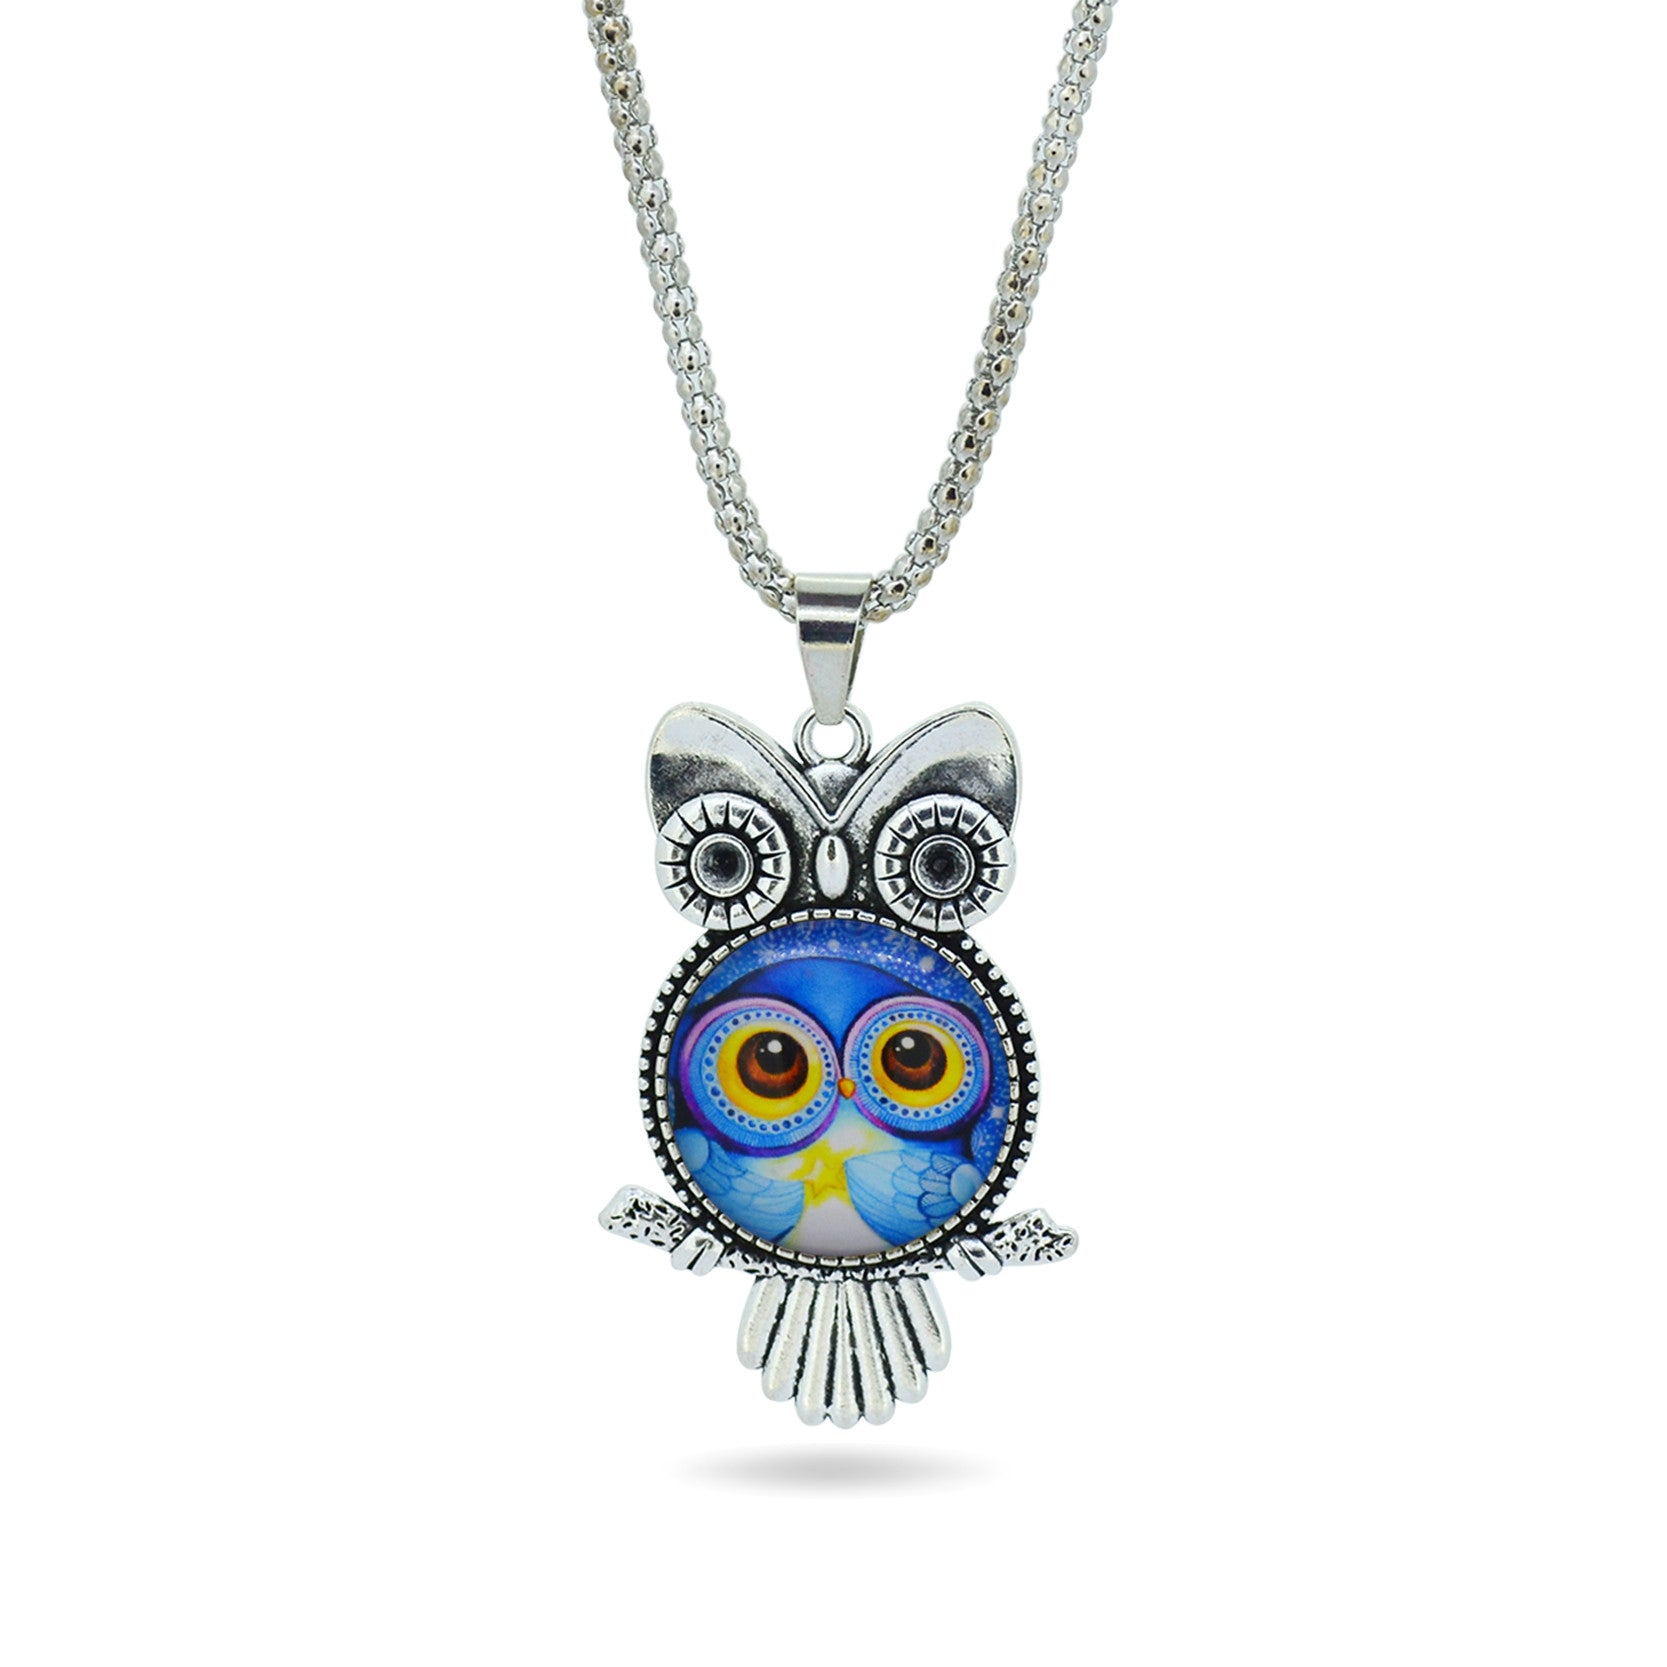 Glass owl pendant necklace the enchanted forest necklace glass owl pendant necklace aloadofball Image collections